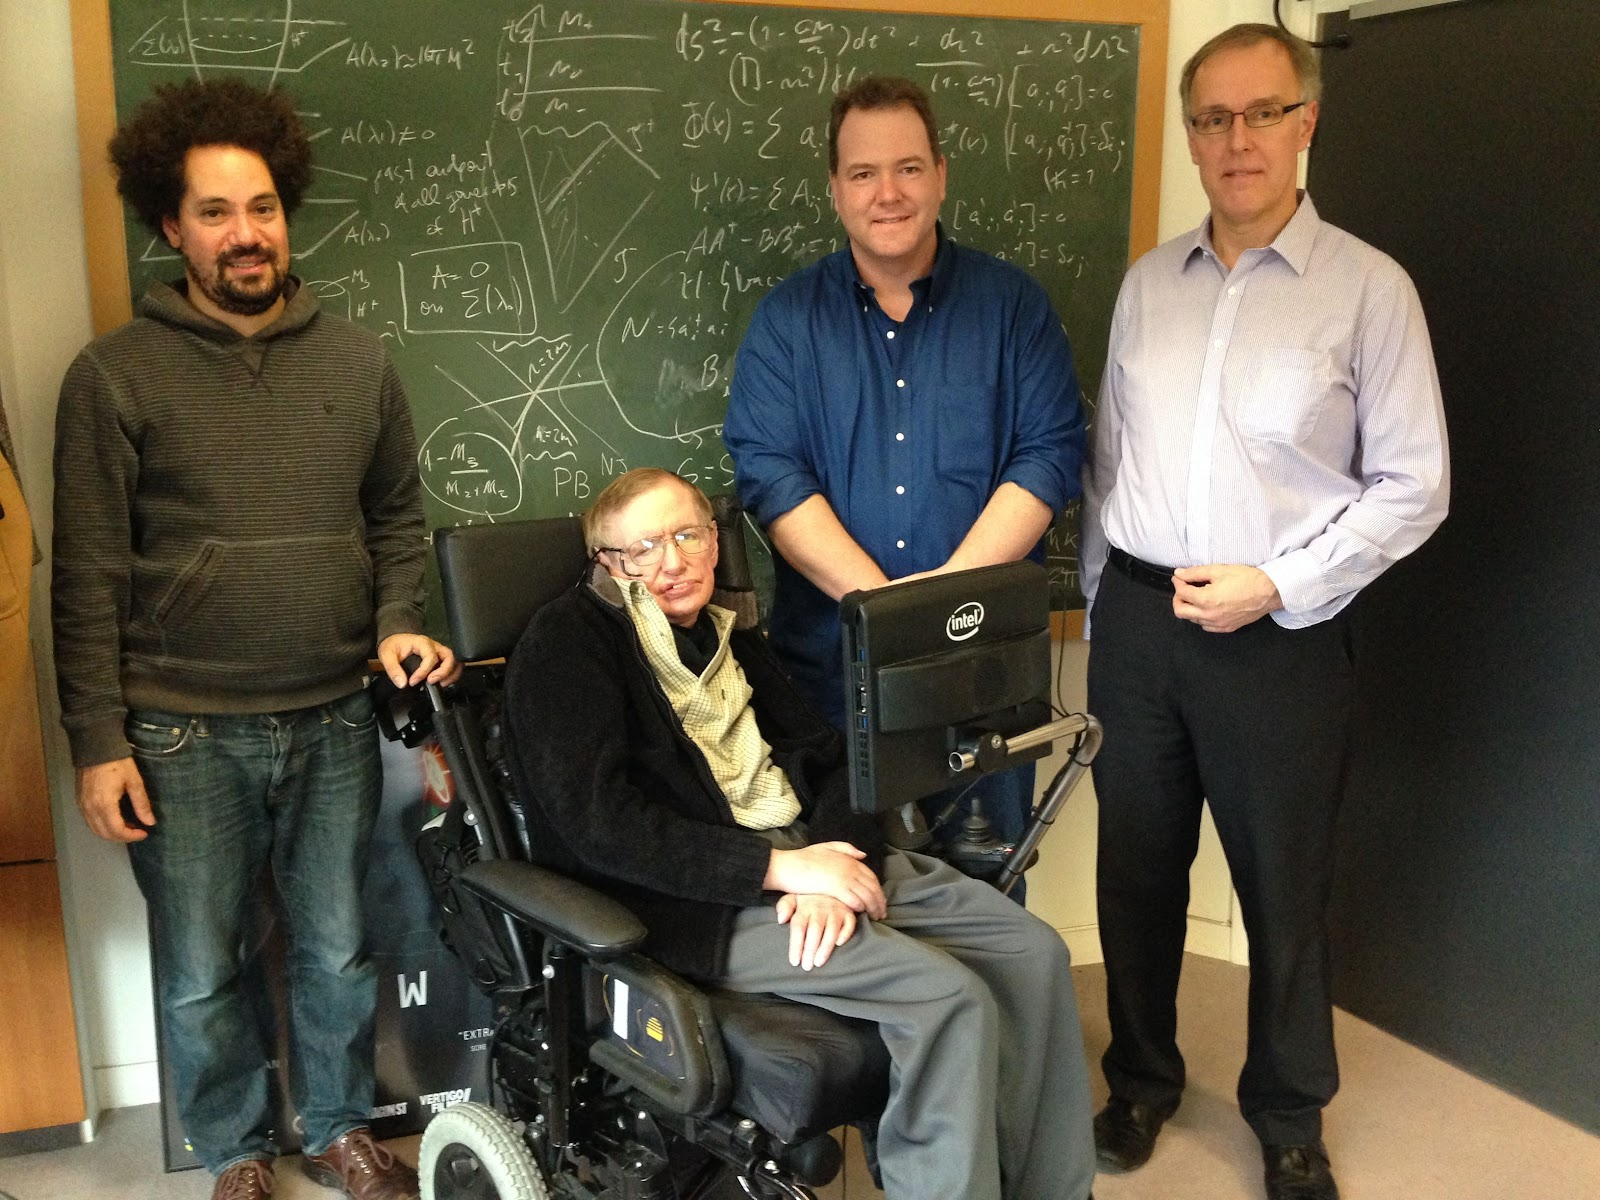 Stephen_Hawking_with_New_Computer (1).jpg